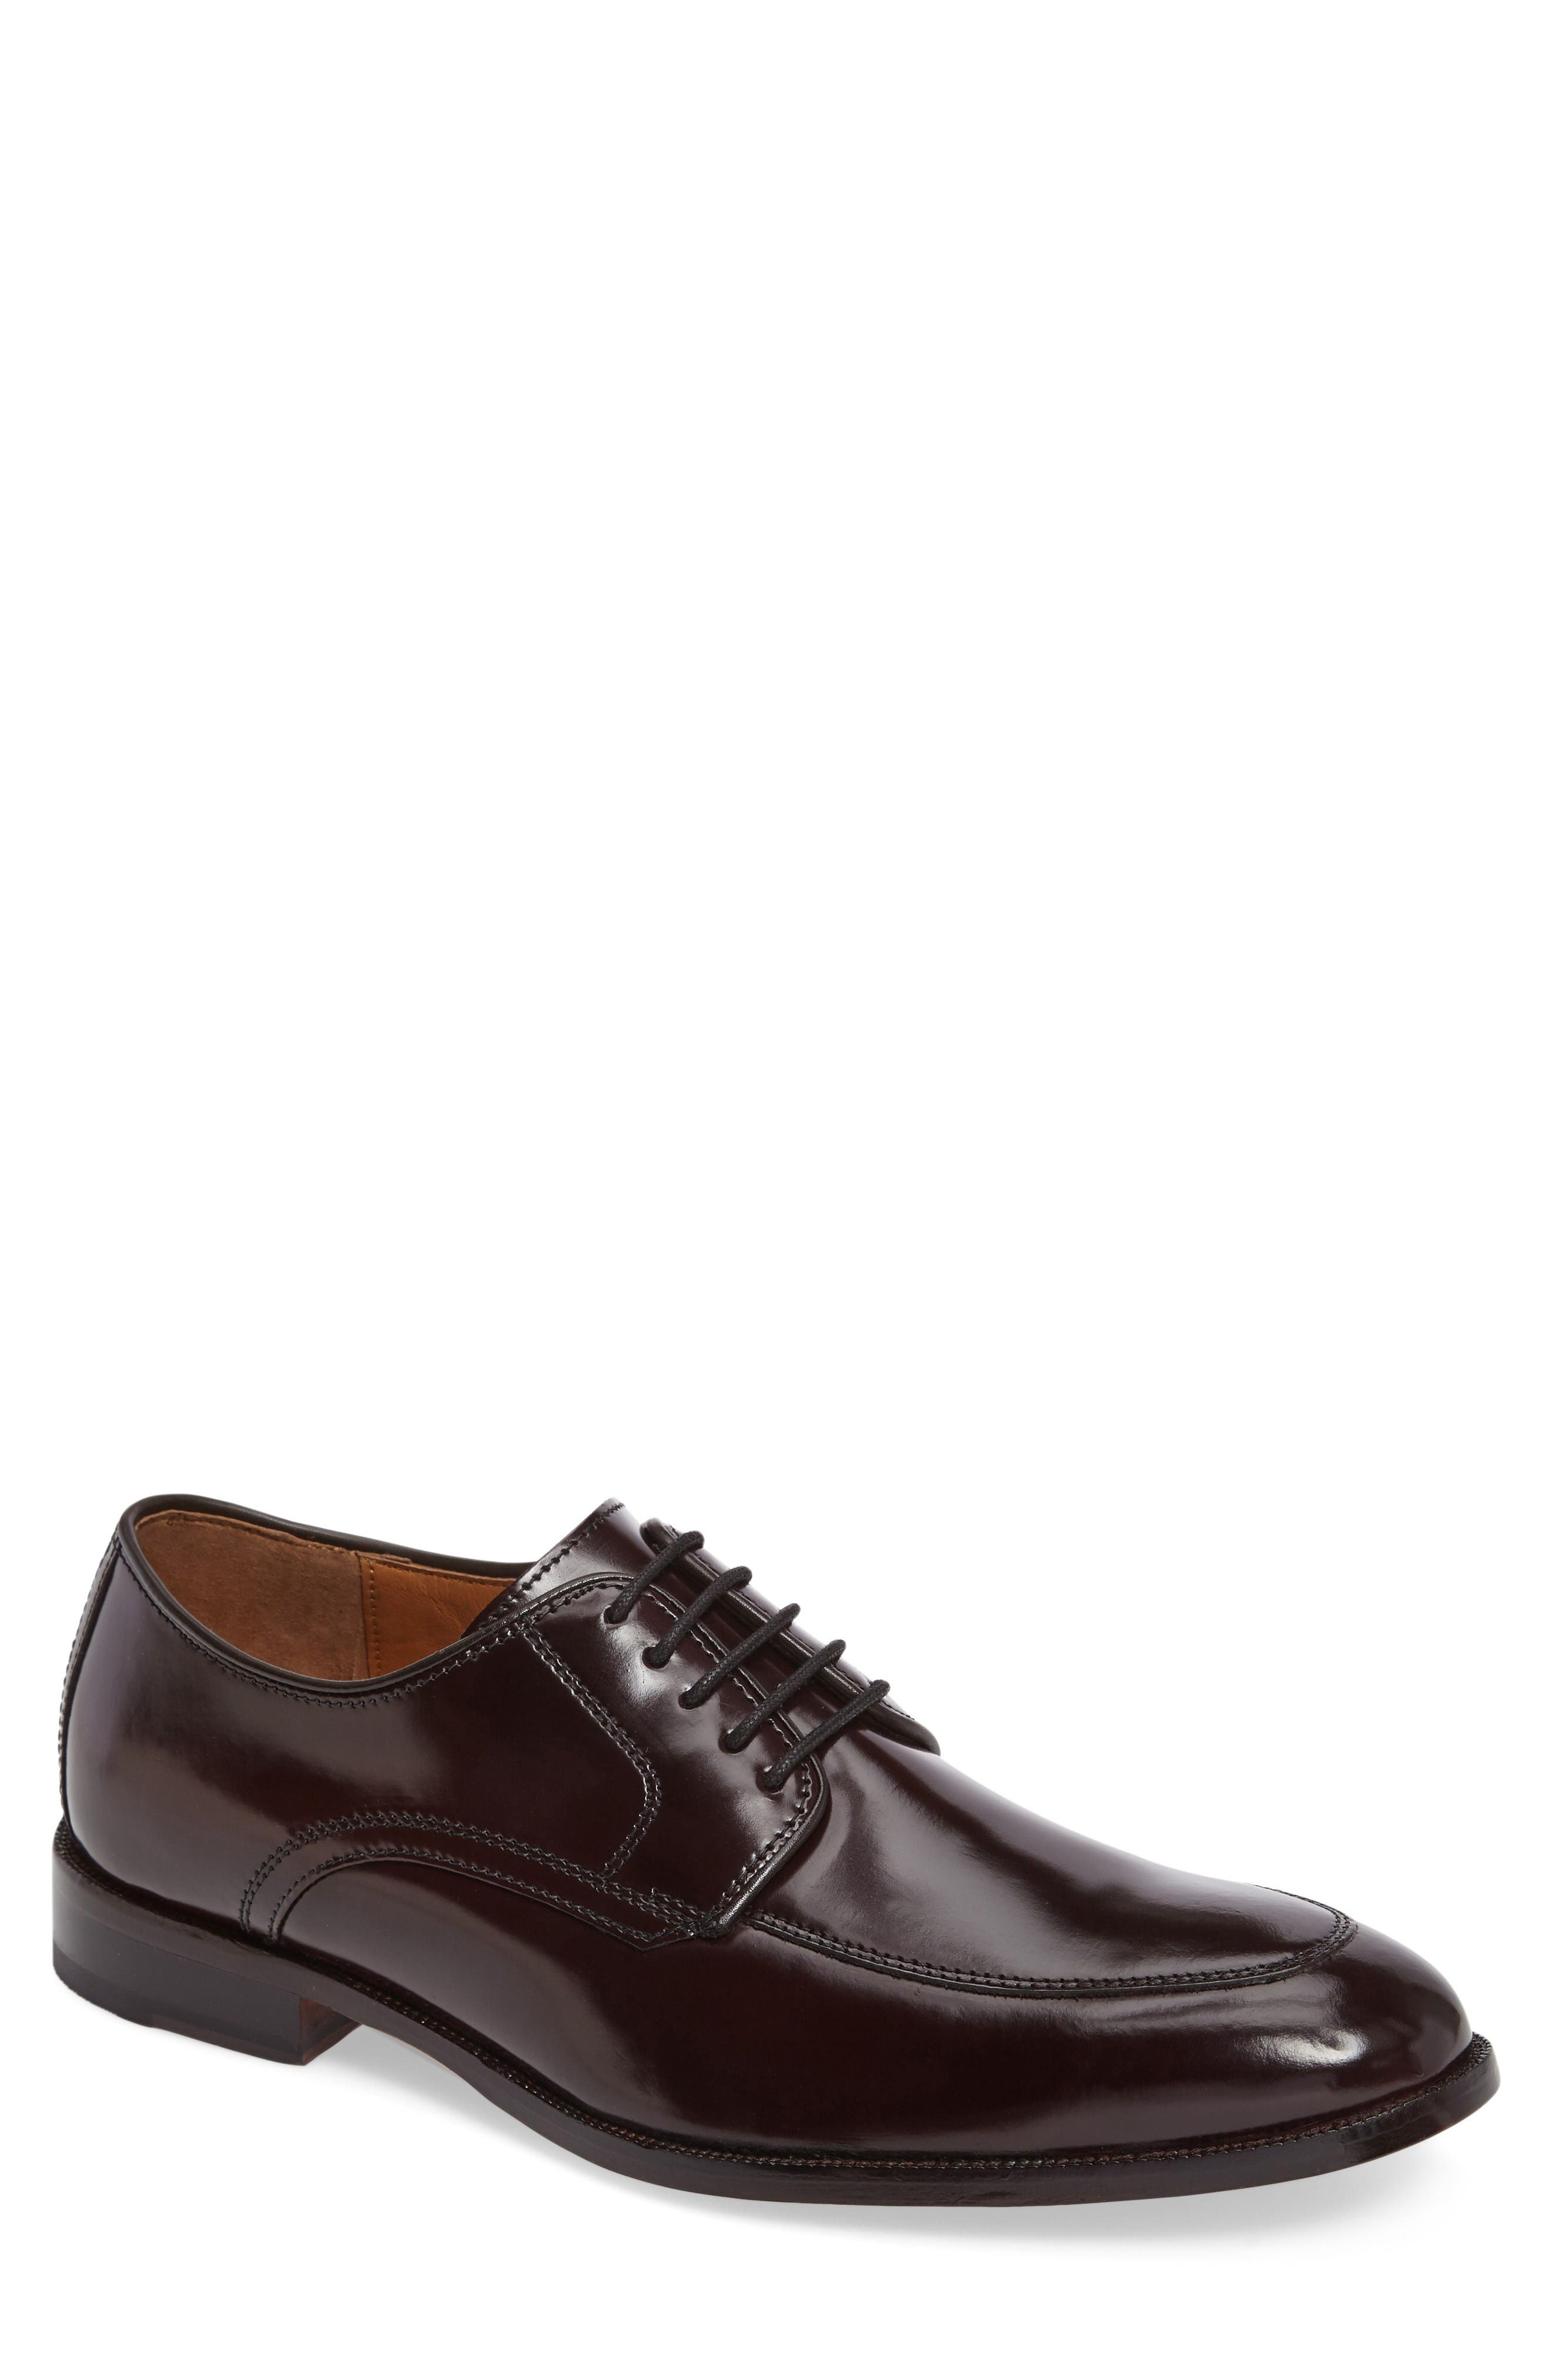 Johnston & Murphy Bradford Apron-Toe Oxford (Men)